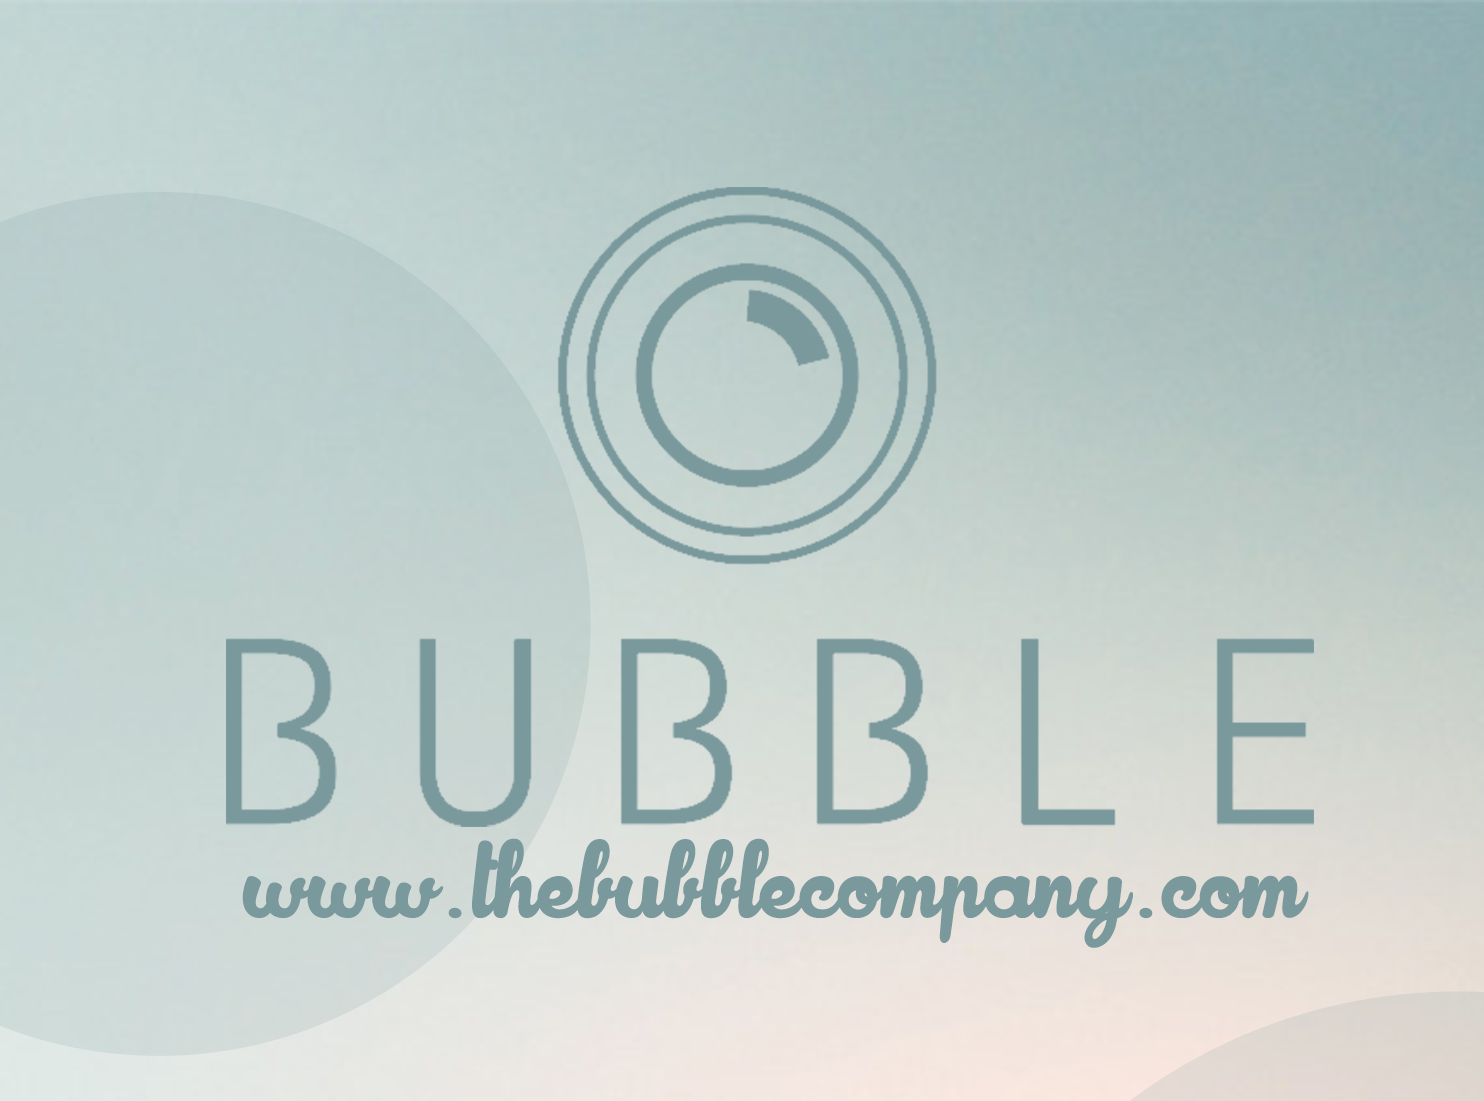 The Bubble Company